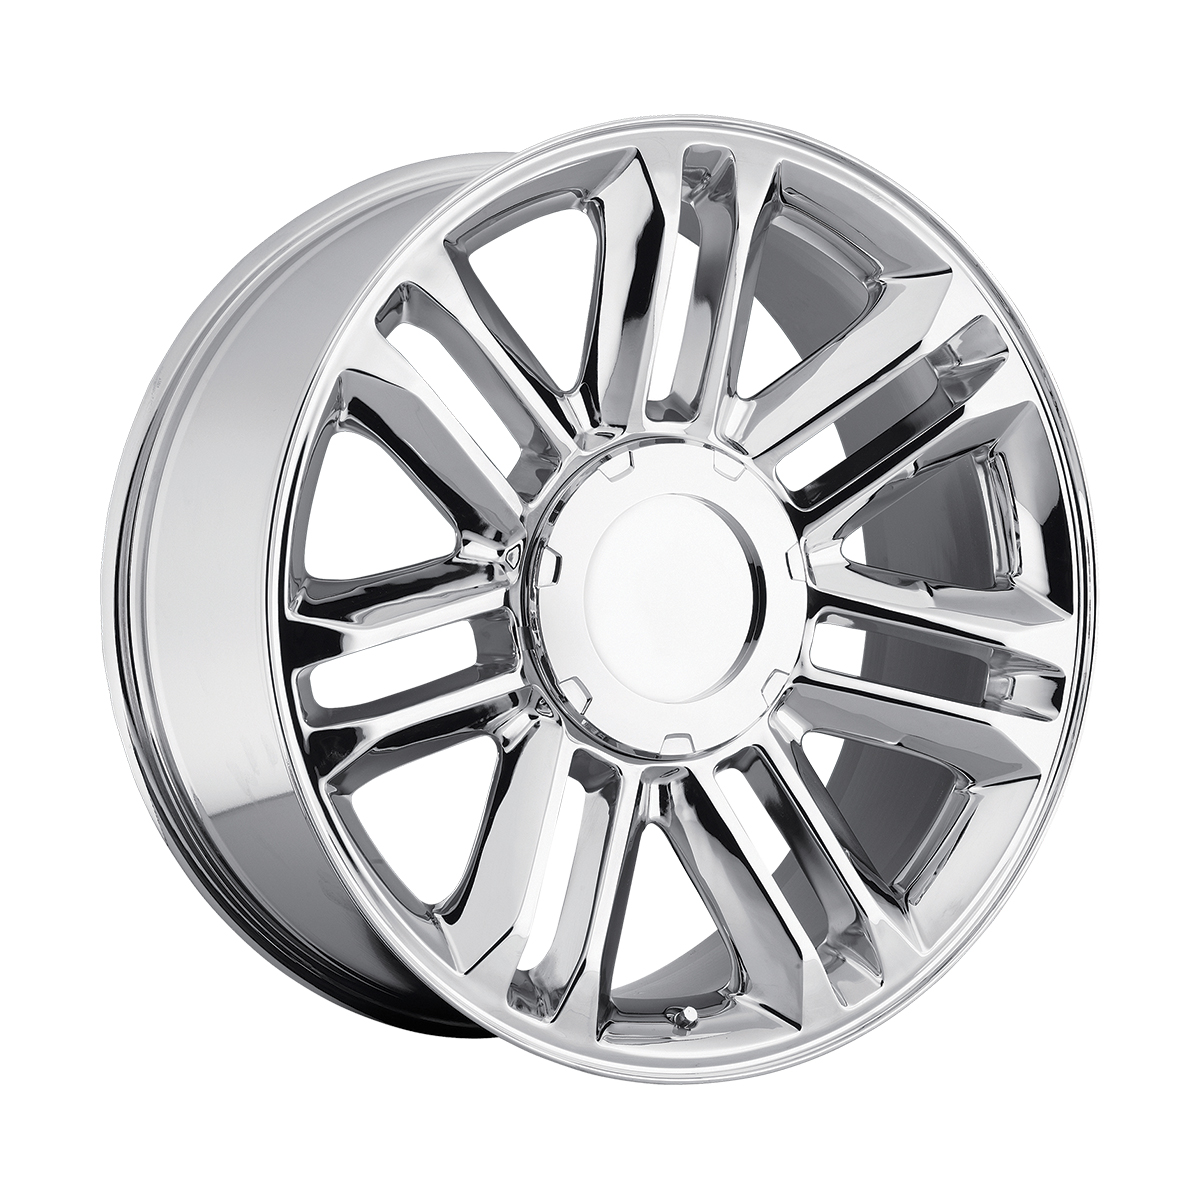 Cadillac Escalade Platinum Price: 2010 Cadillac Escalade Platinum Chrome Replicas : Wheels